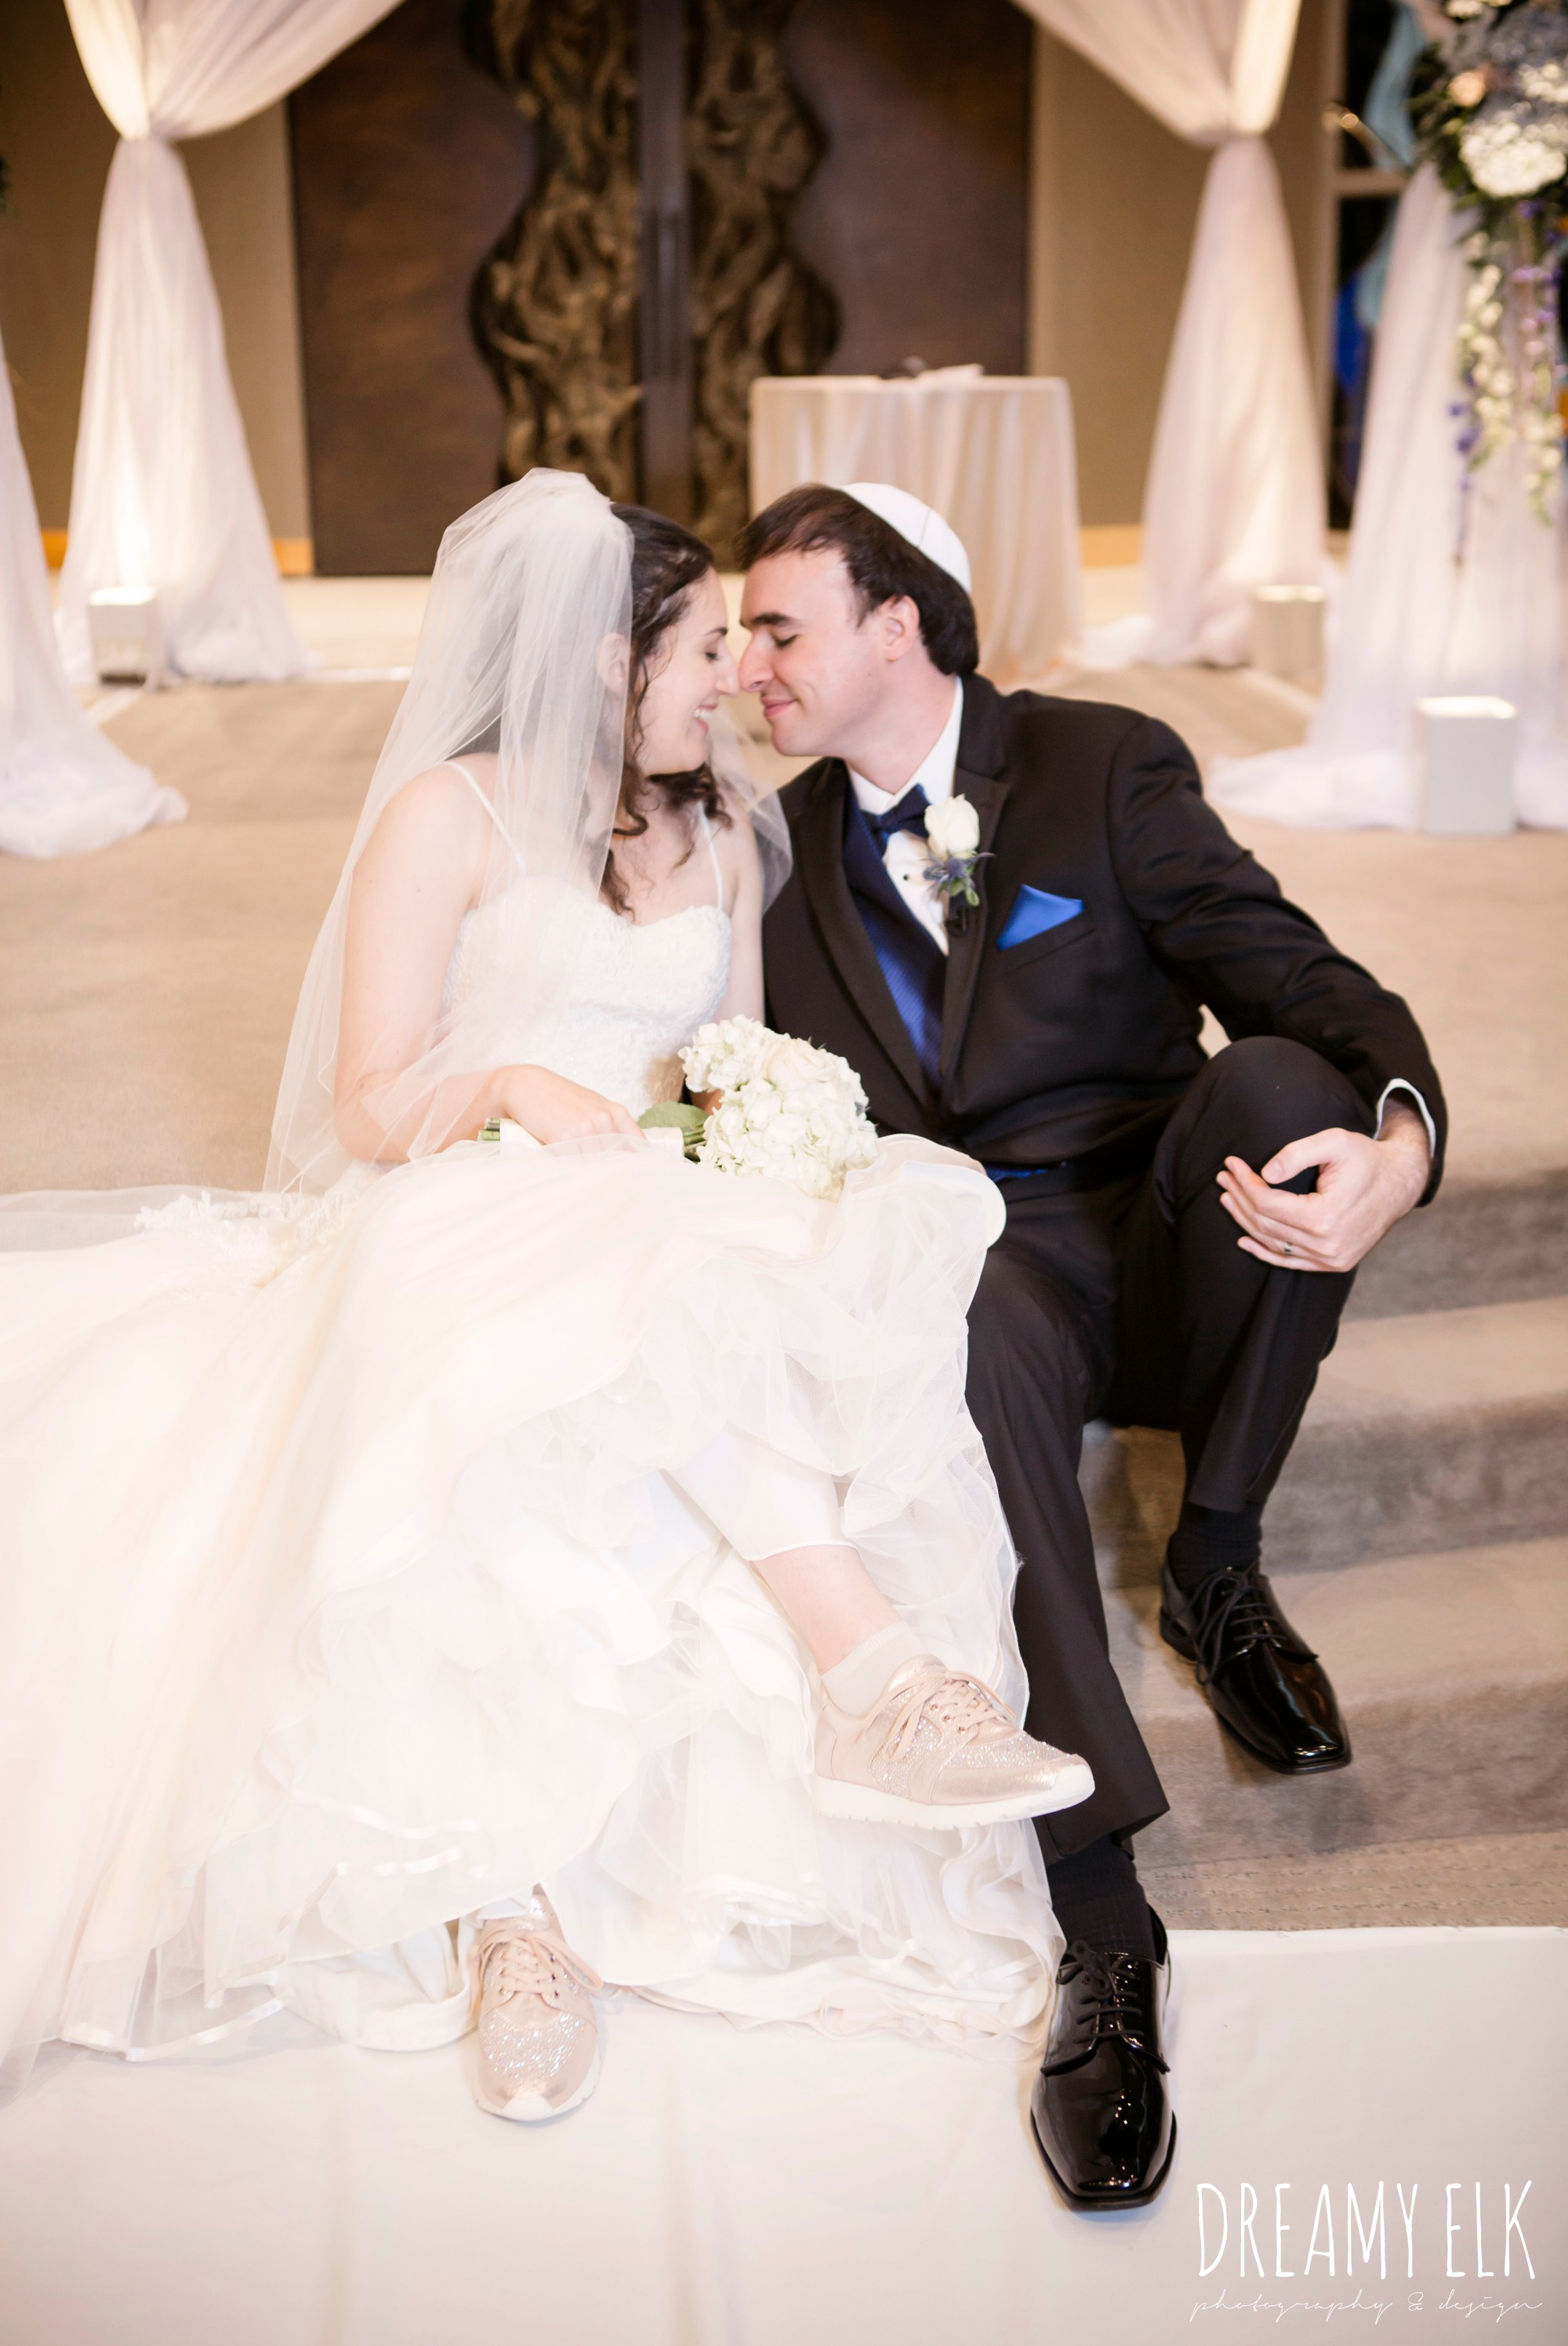 bride and groom in tennis shoes, summer june jewish wedding photo {dreamy elk photography and design}